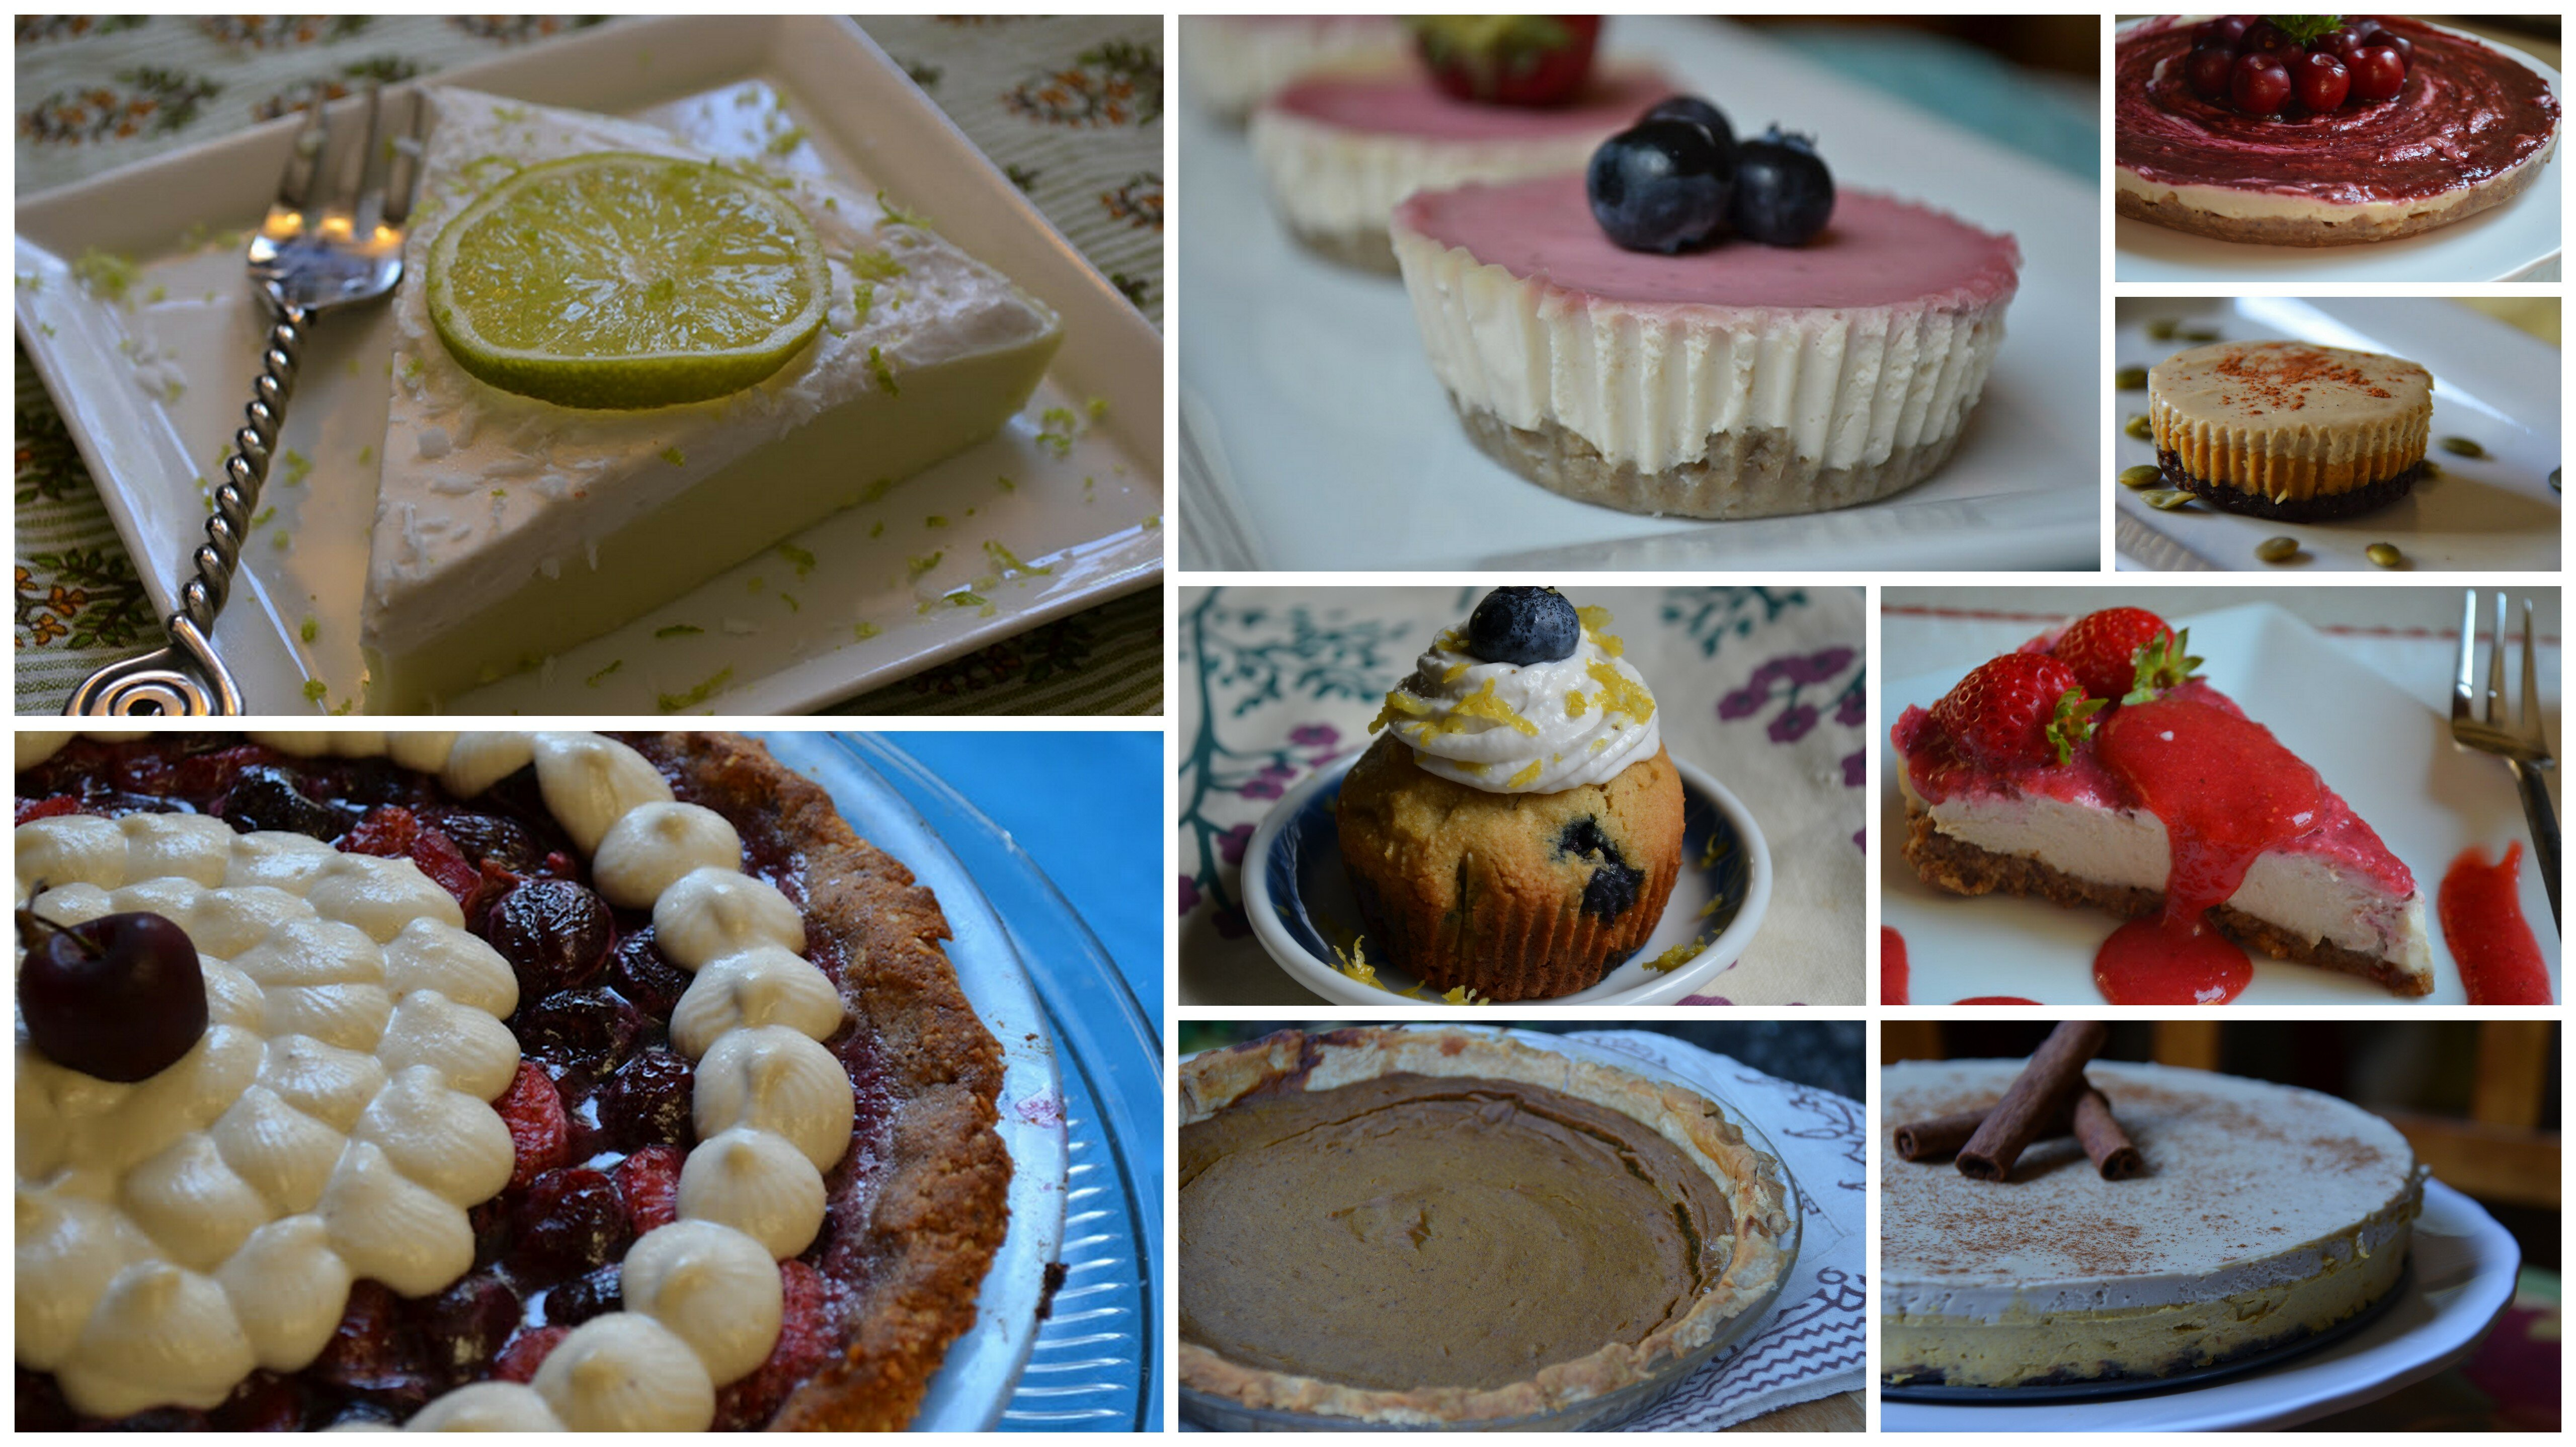 cakes and pies2